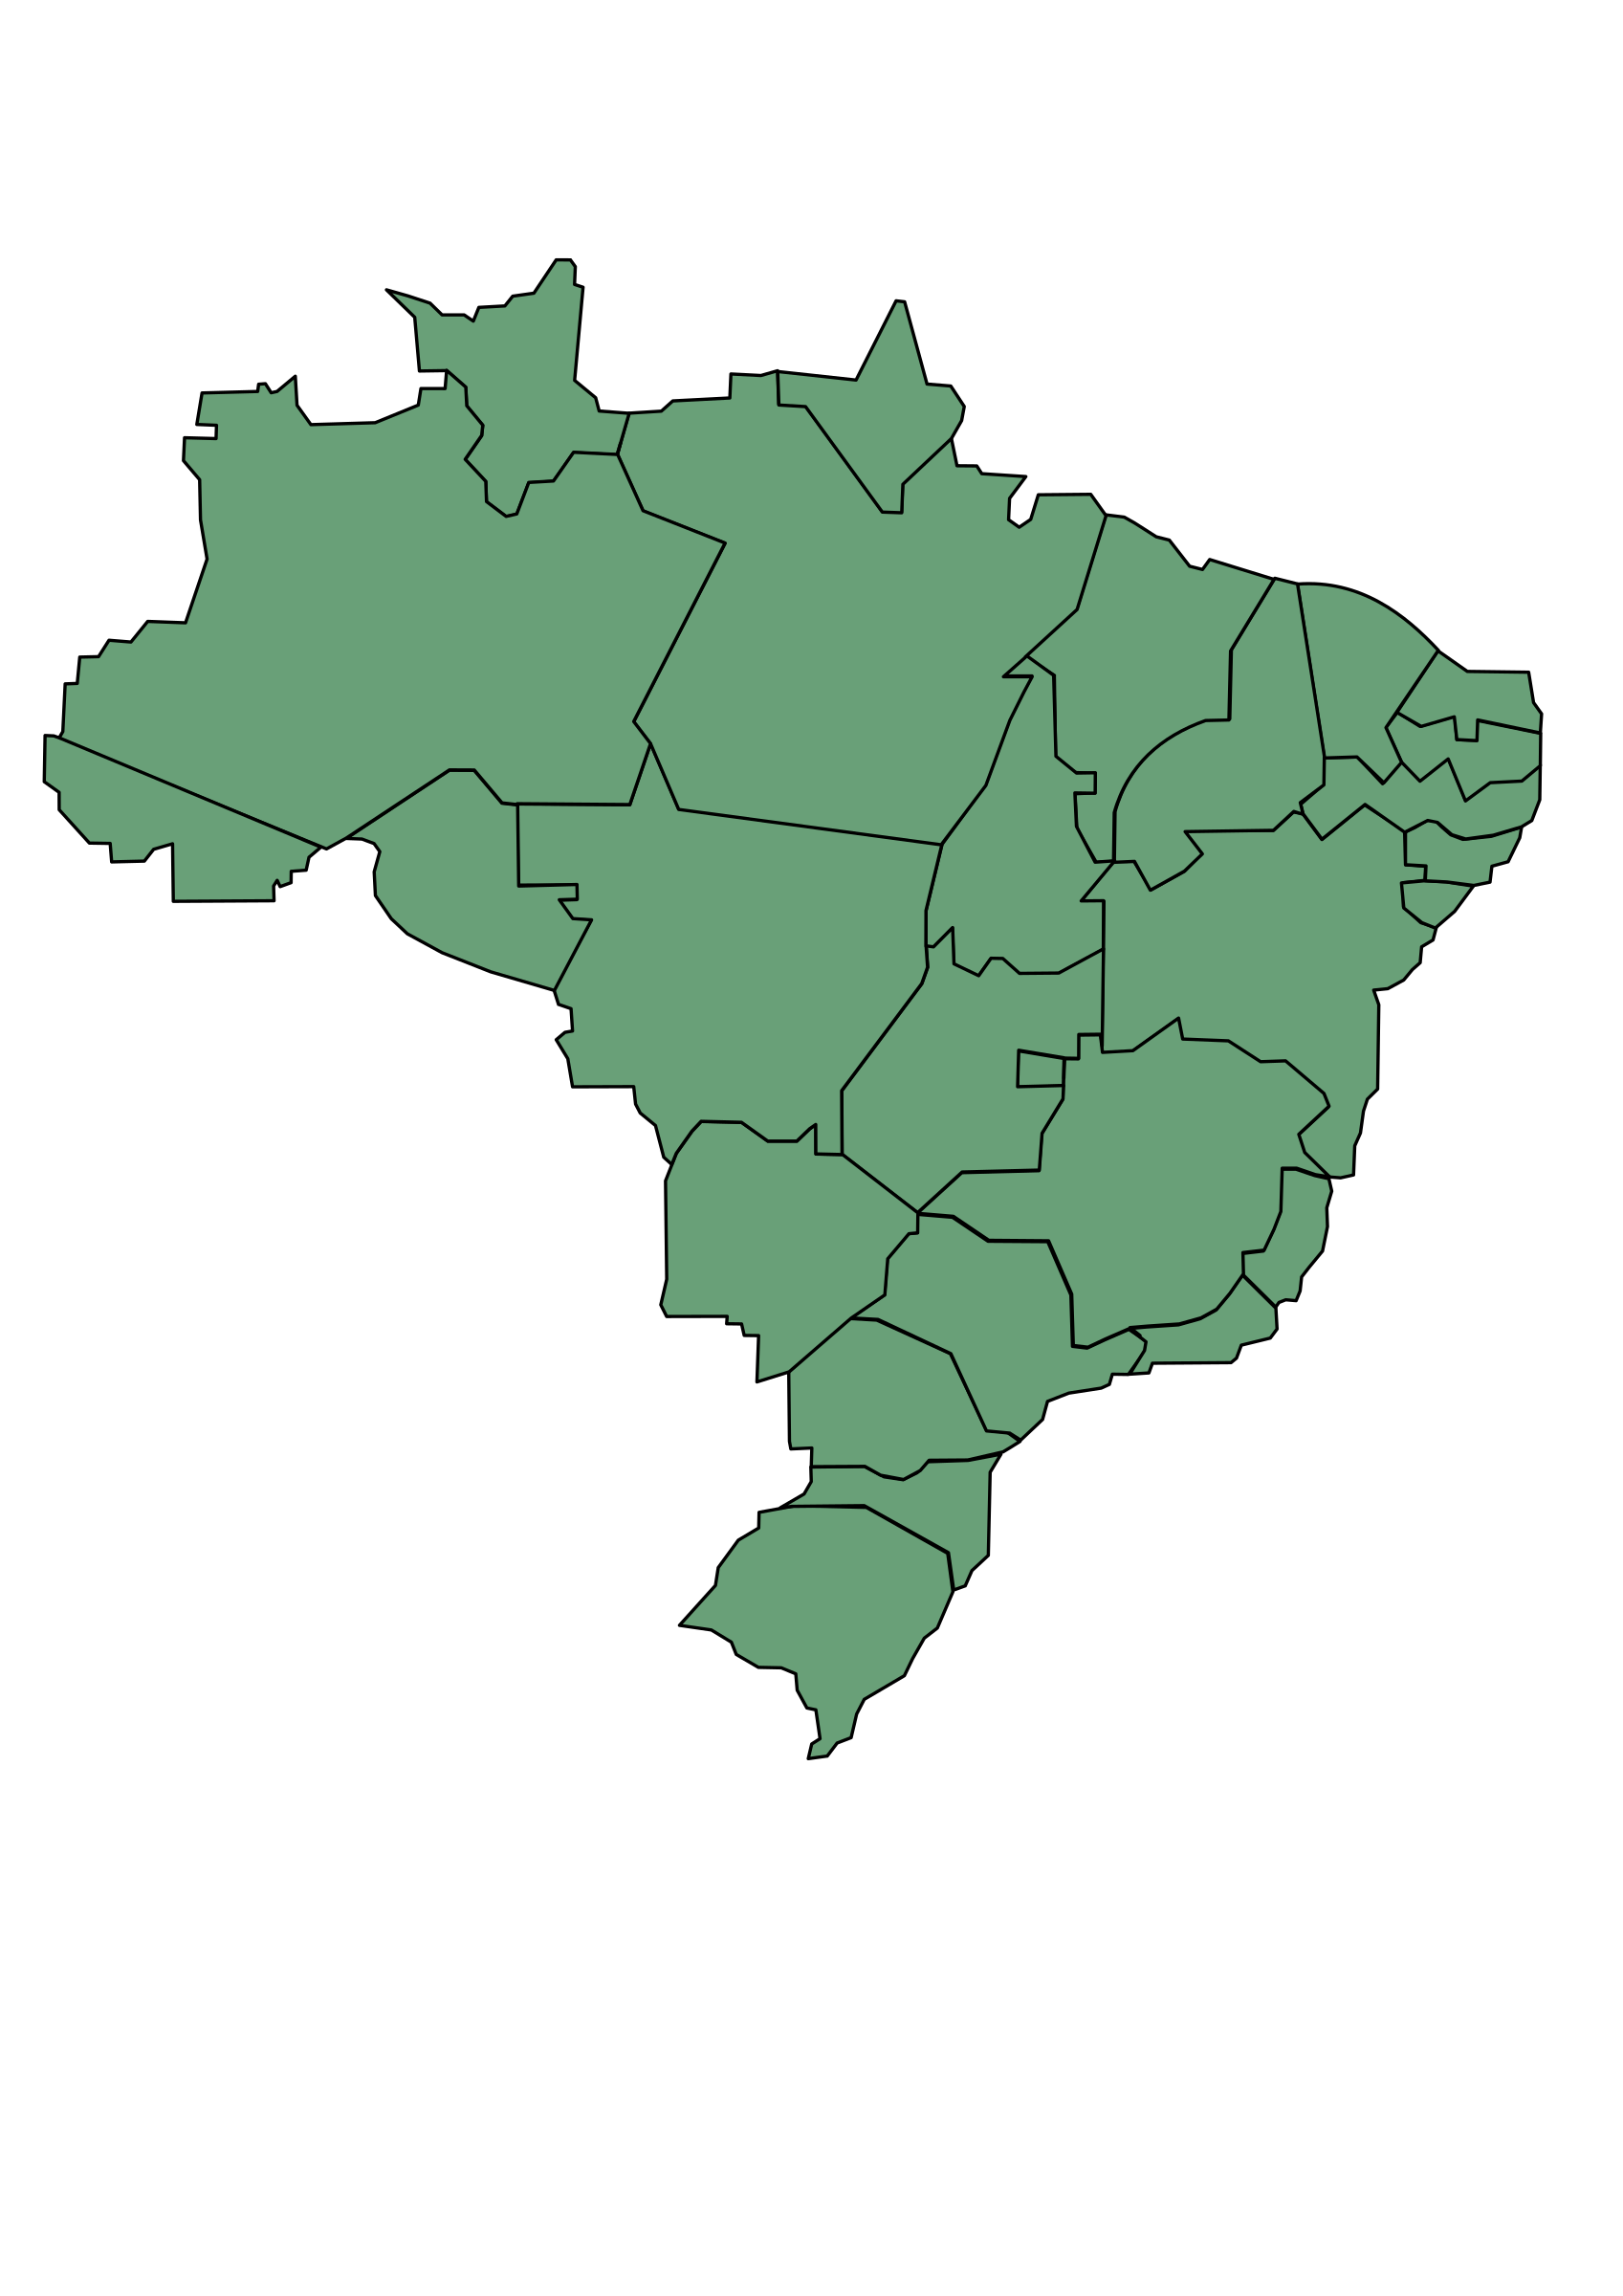 Clipart Brazil Map With States - Brazil states map